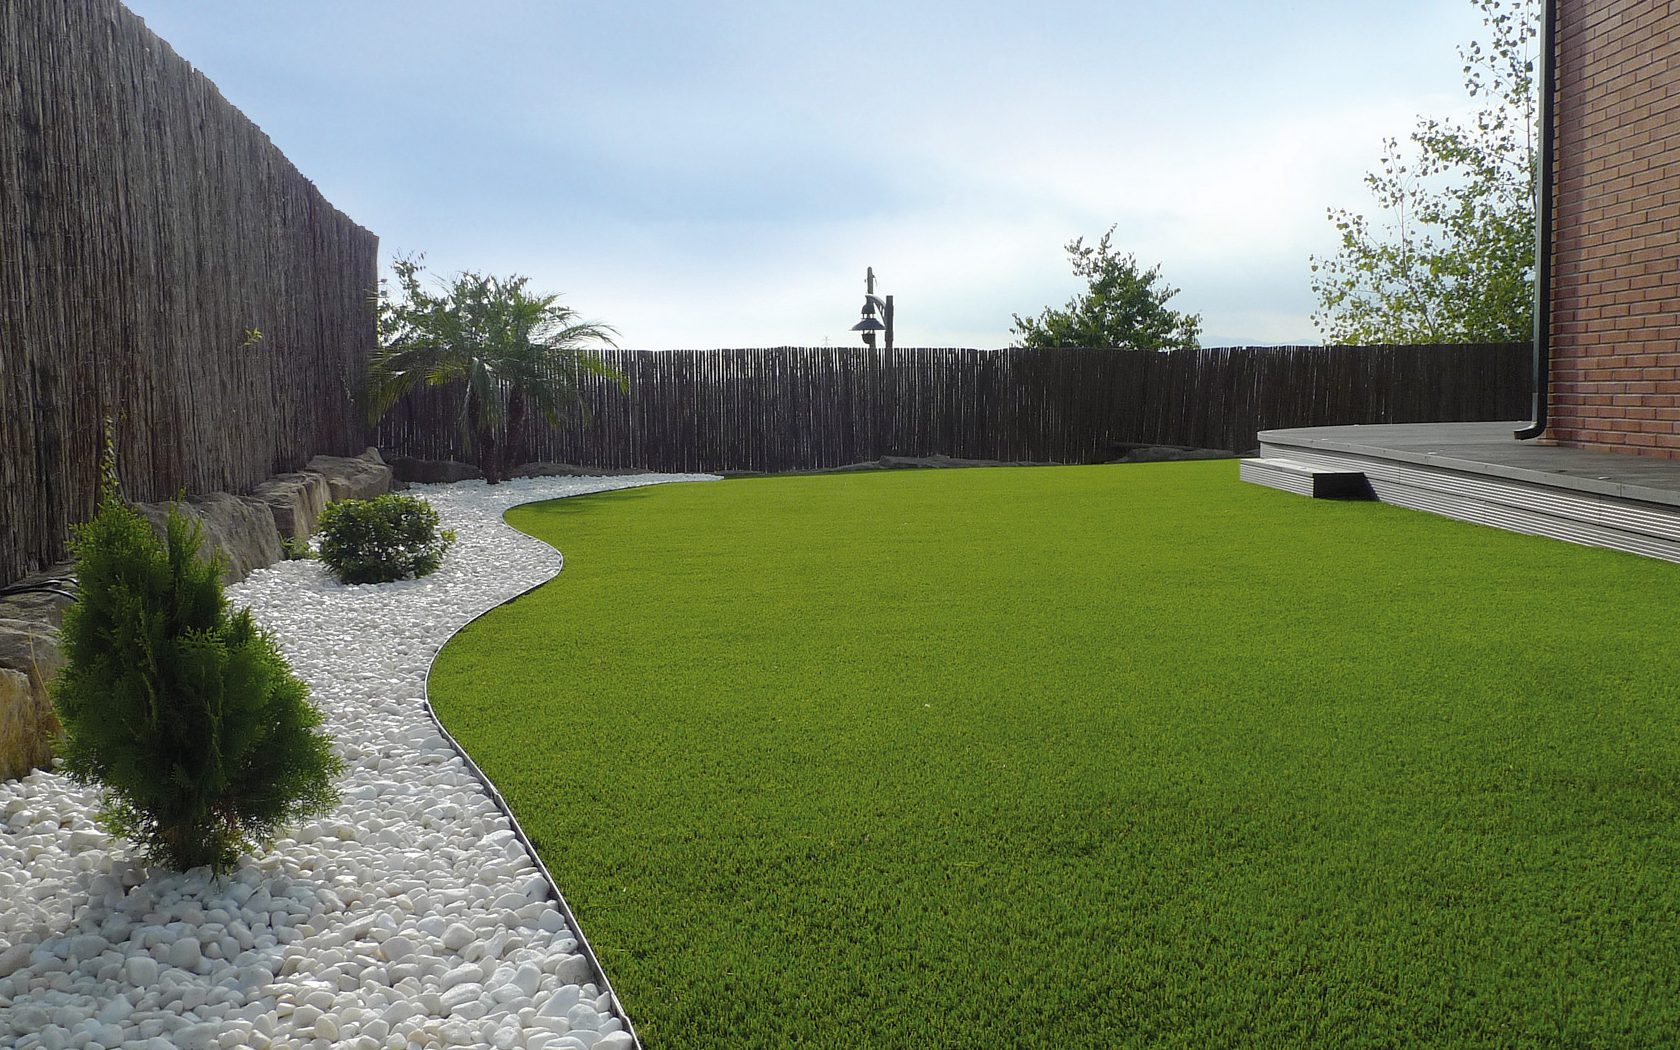 Speedgrass jard n terraza cesped artificial mobiliario for Cesped para jardin